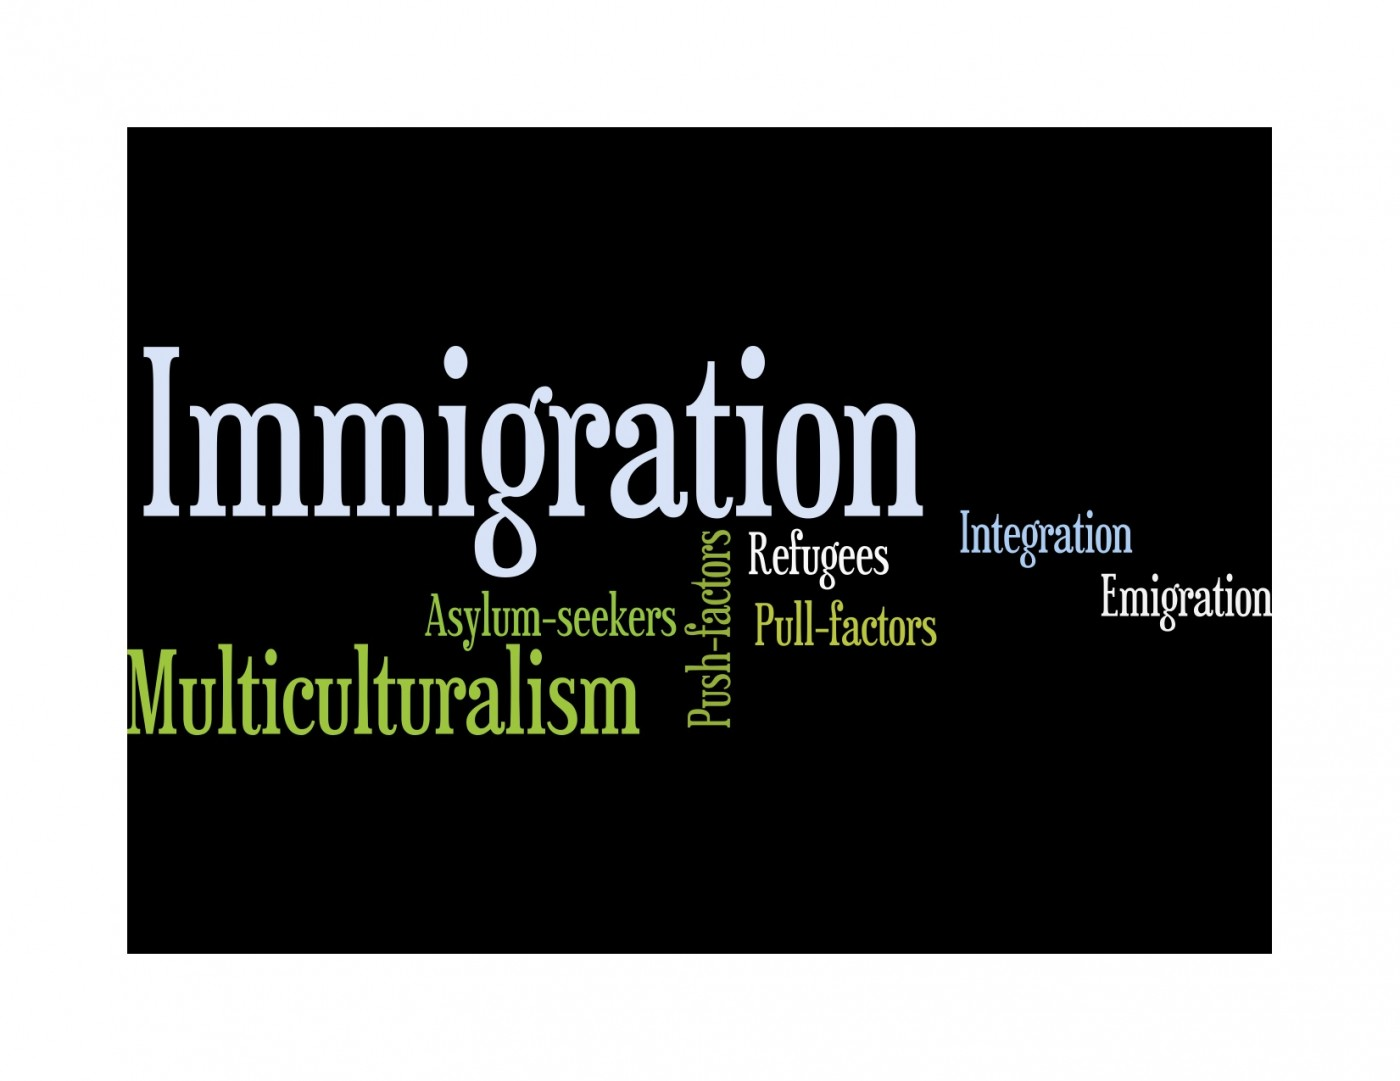 016 Immigration Essay Example Exceptional Policy Examples Reform Questions Prompt 1400